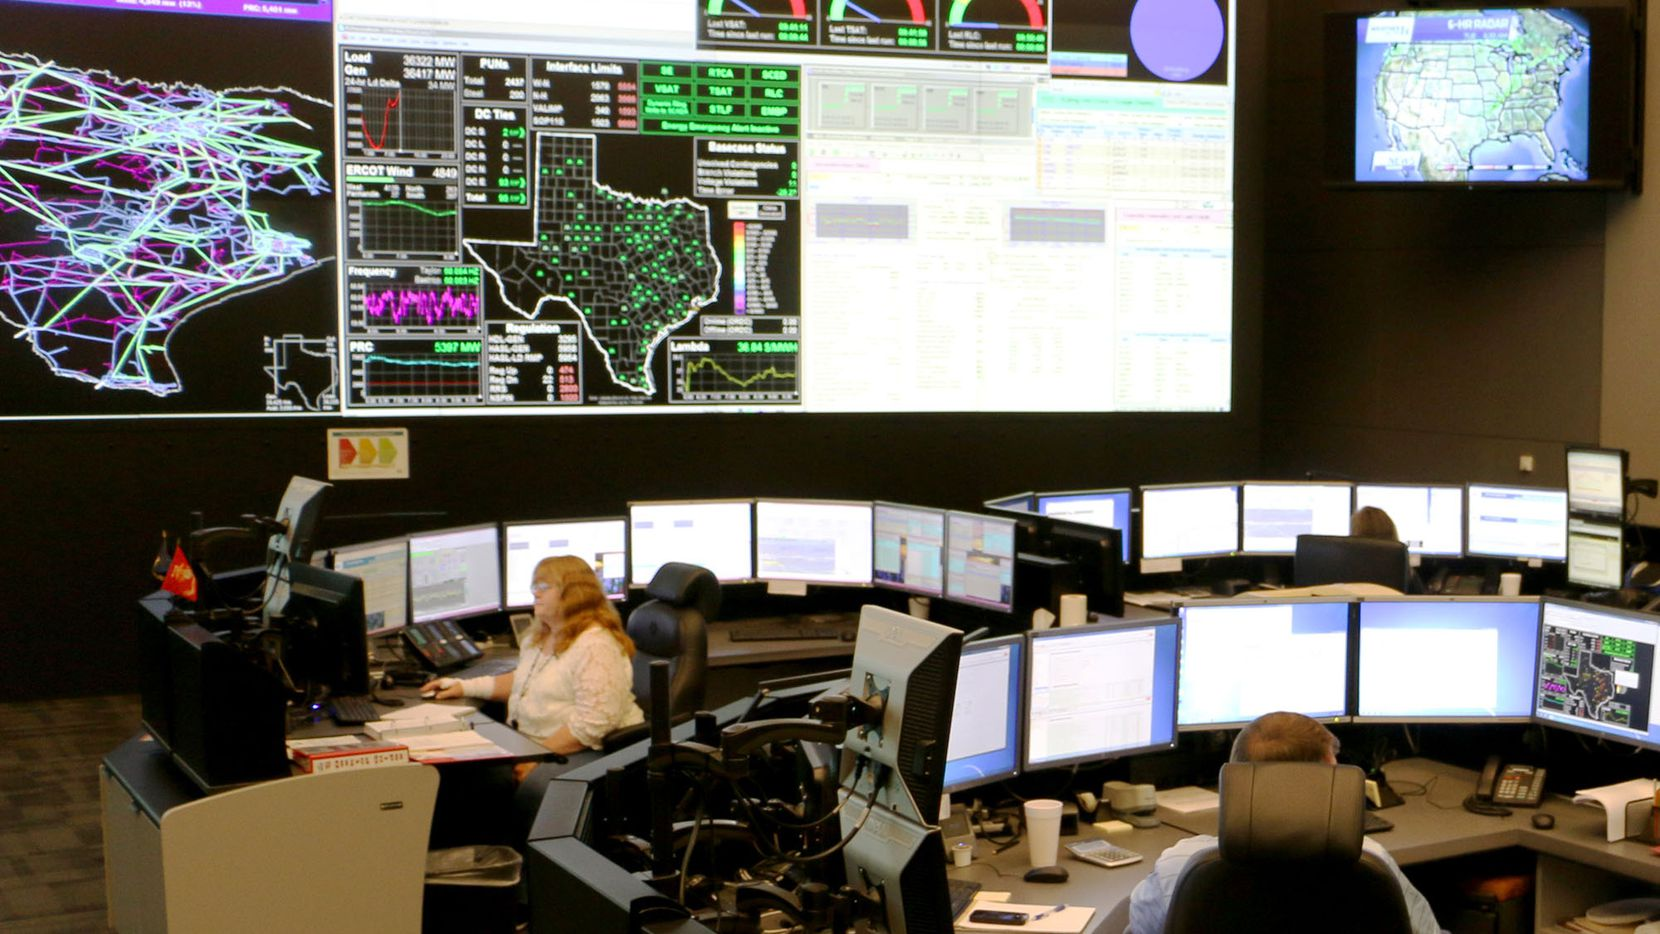 An ERCOT control room. The Electric Reliability Council of Texas (ERCOT) manages the flow of electric power to more than 26 million Texas customers -- representing about 90 percent of the state's electric load.